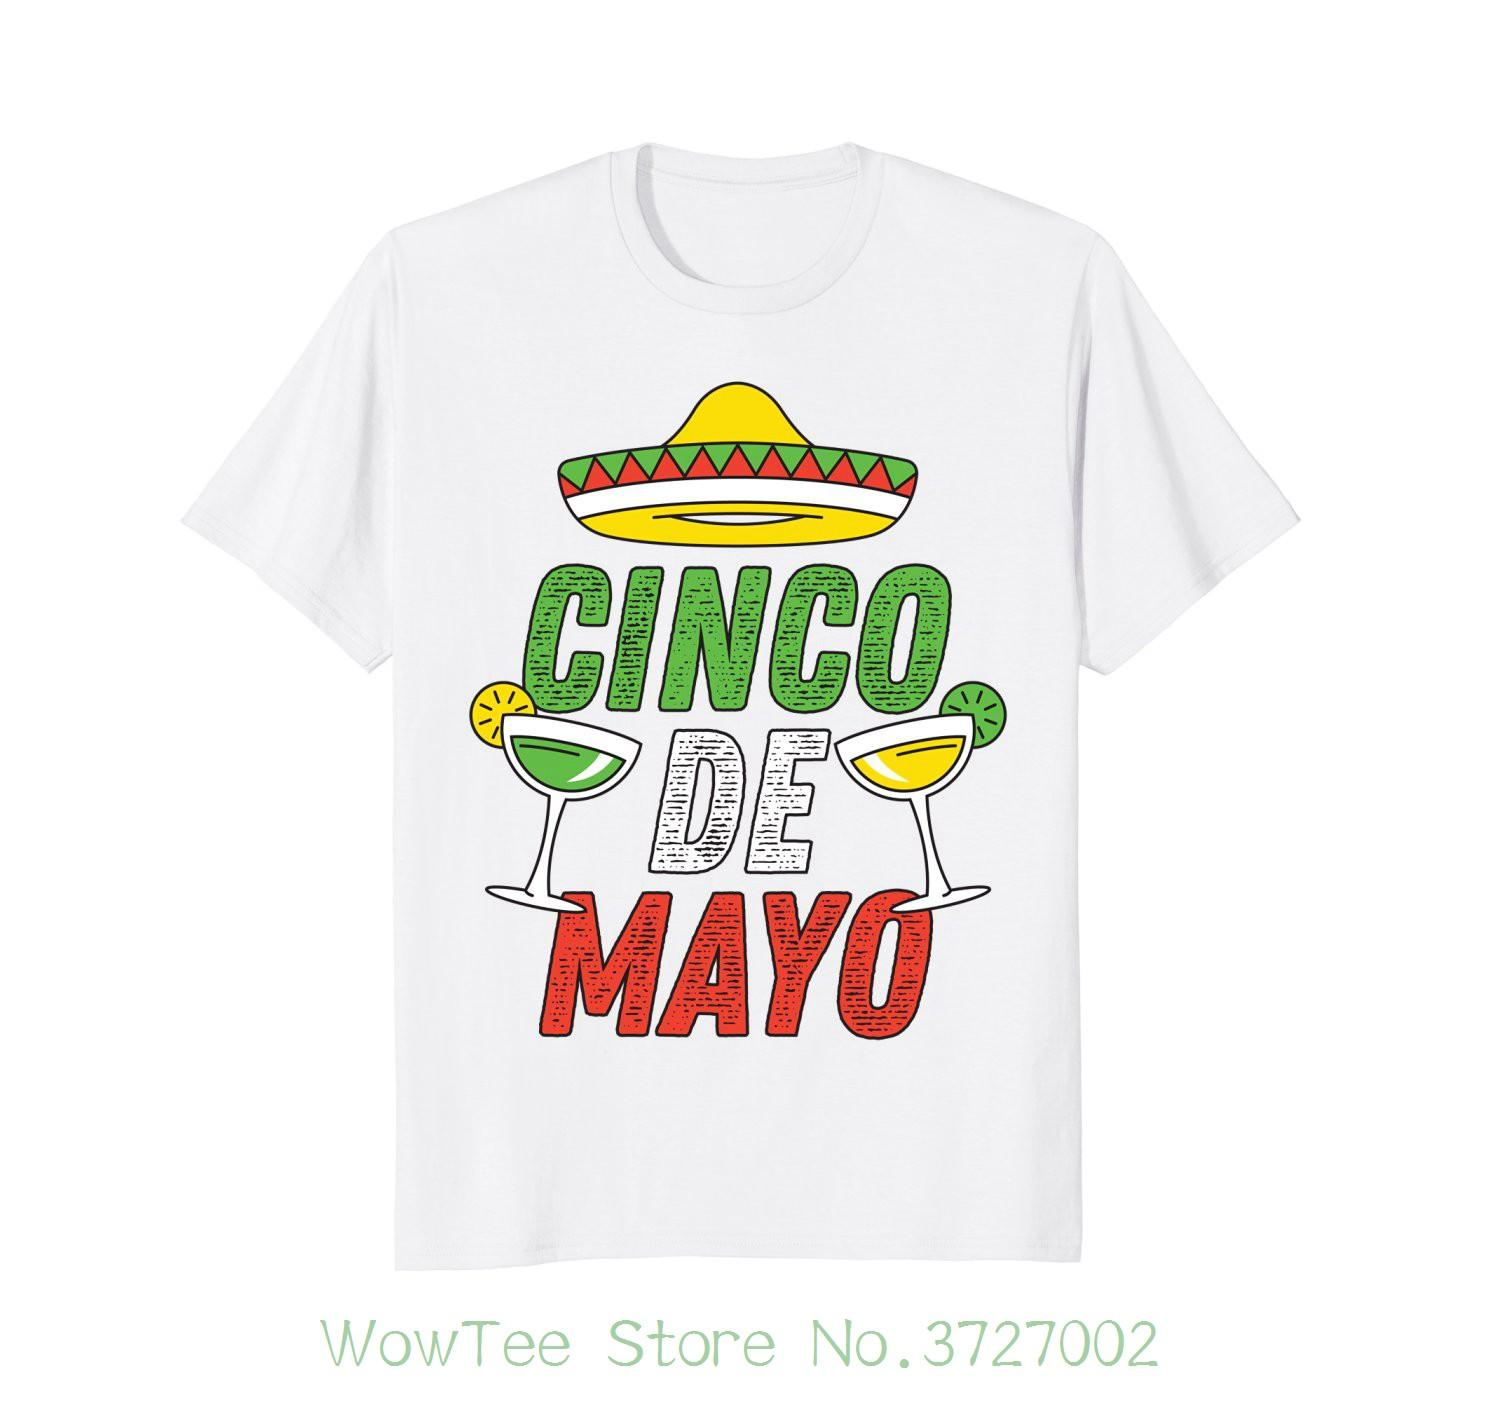 709494d22cd Fiesta Cinco De Mayo Shirt Printed Summer Style Tees Male Harajuku Top  Fitness Brand Clothing Online with  18.15 Piece on Wowteestore s Store